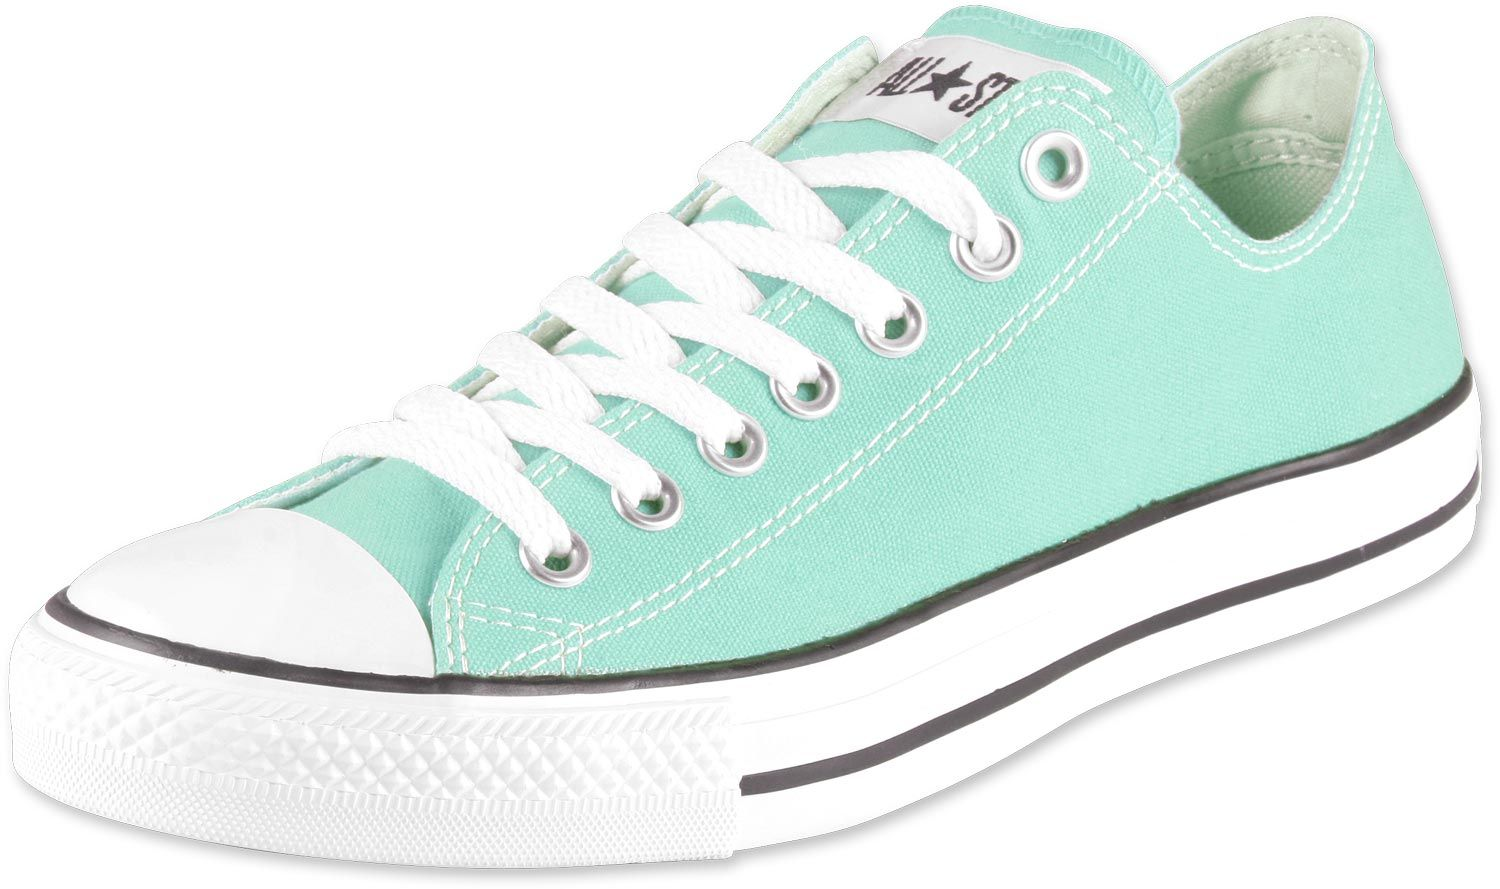 b6b2bd09c5c703 mint converse- just bought these and I love them! beach glass converse Car  Tuning Blue Converse Shoes ...